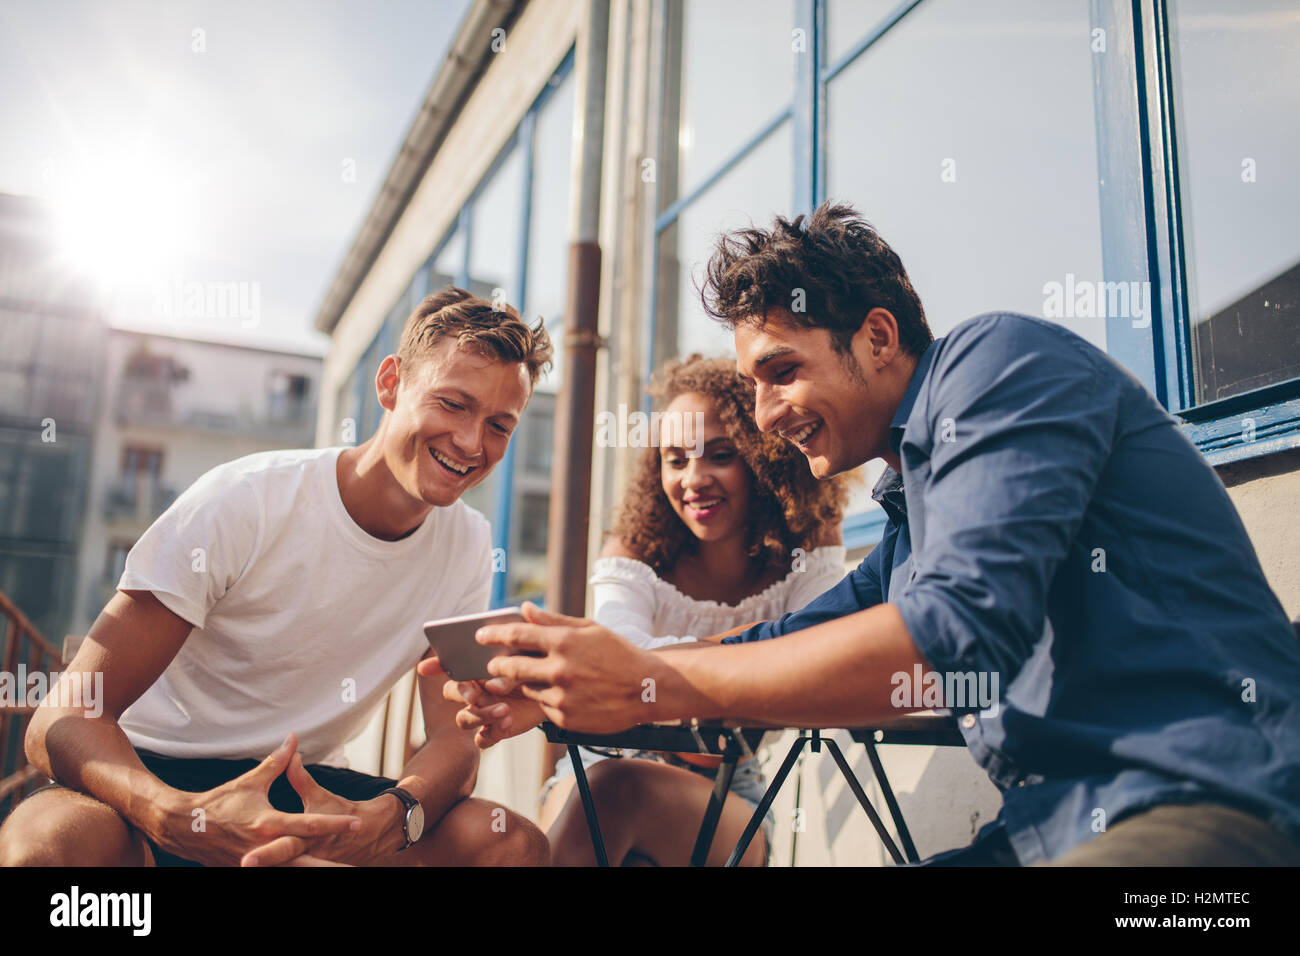 Three young friends sitting outdoors and looking at mobile phone. Group of people sitting at outdoor cafe and watching - Stock Image